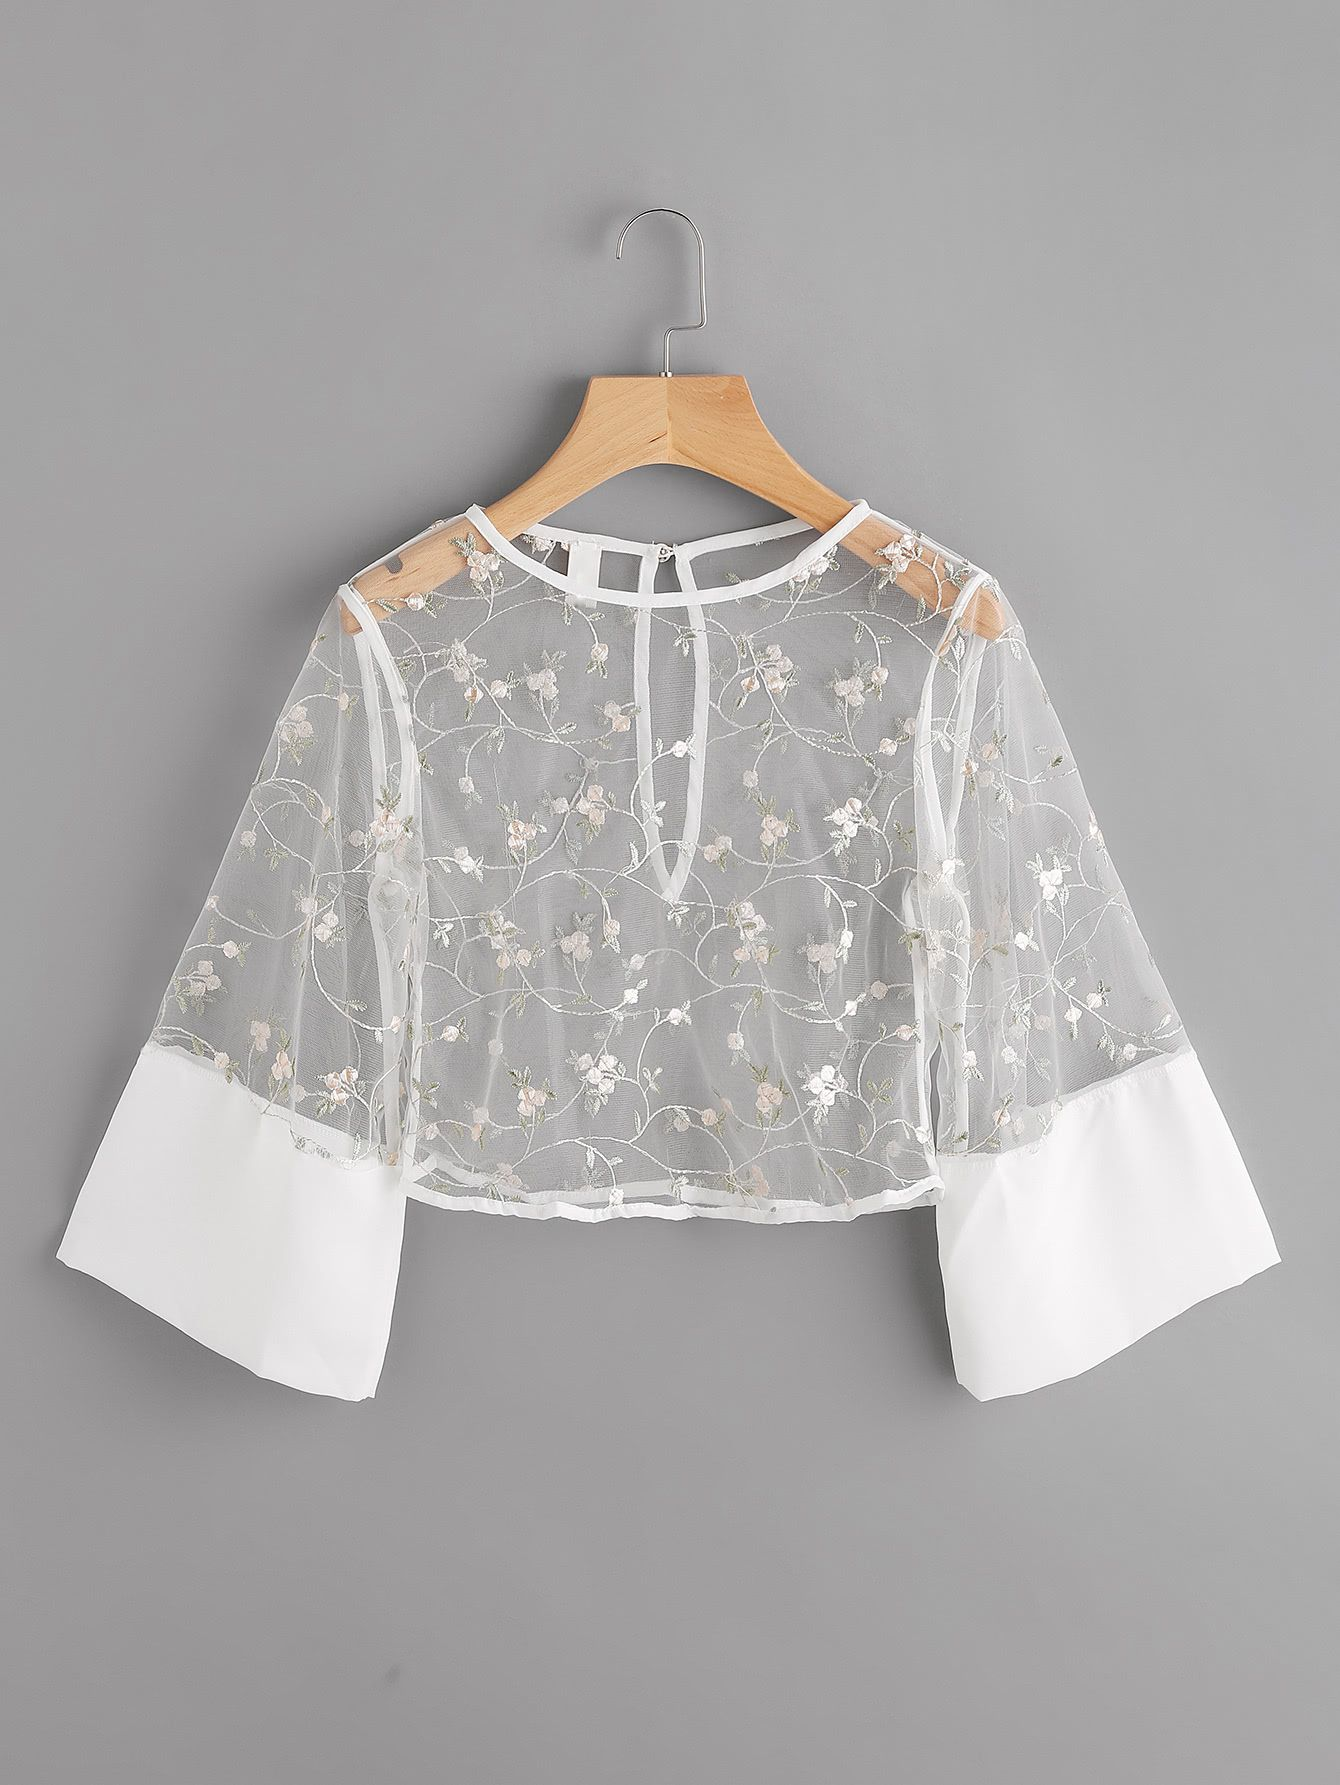 65e70cd0d5ba98 Shop Contrast Cuff Keyhole Back Embroidery Mesh Crop Top online. SheIn  offers Contrast Cuff Keyhole Back Embroidery Mesh Crop Top   more to fit  your ...